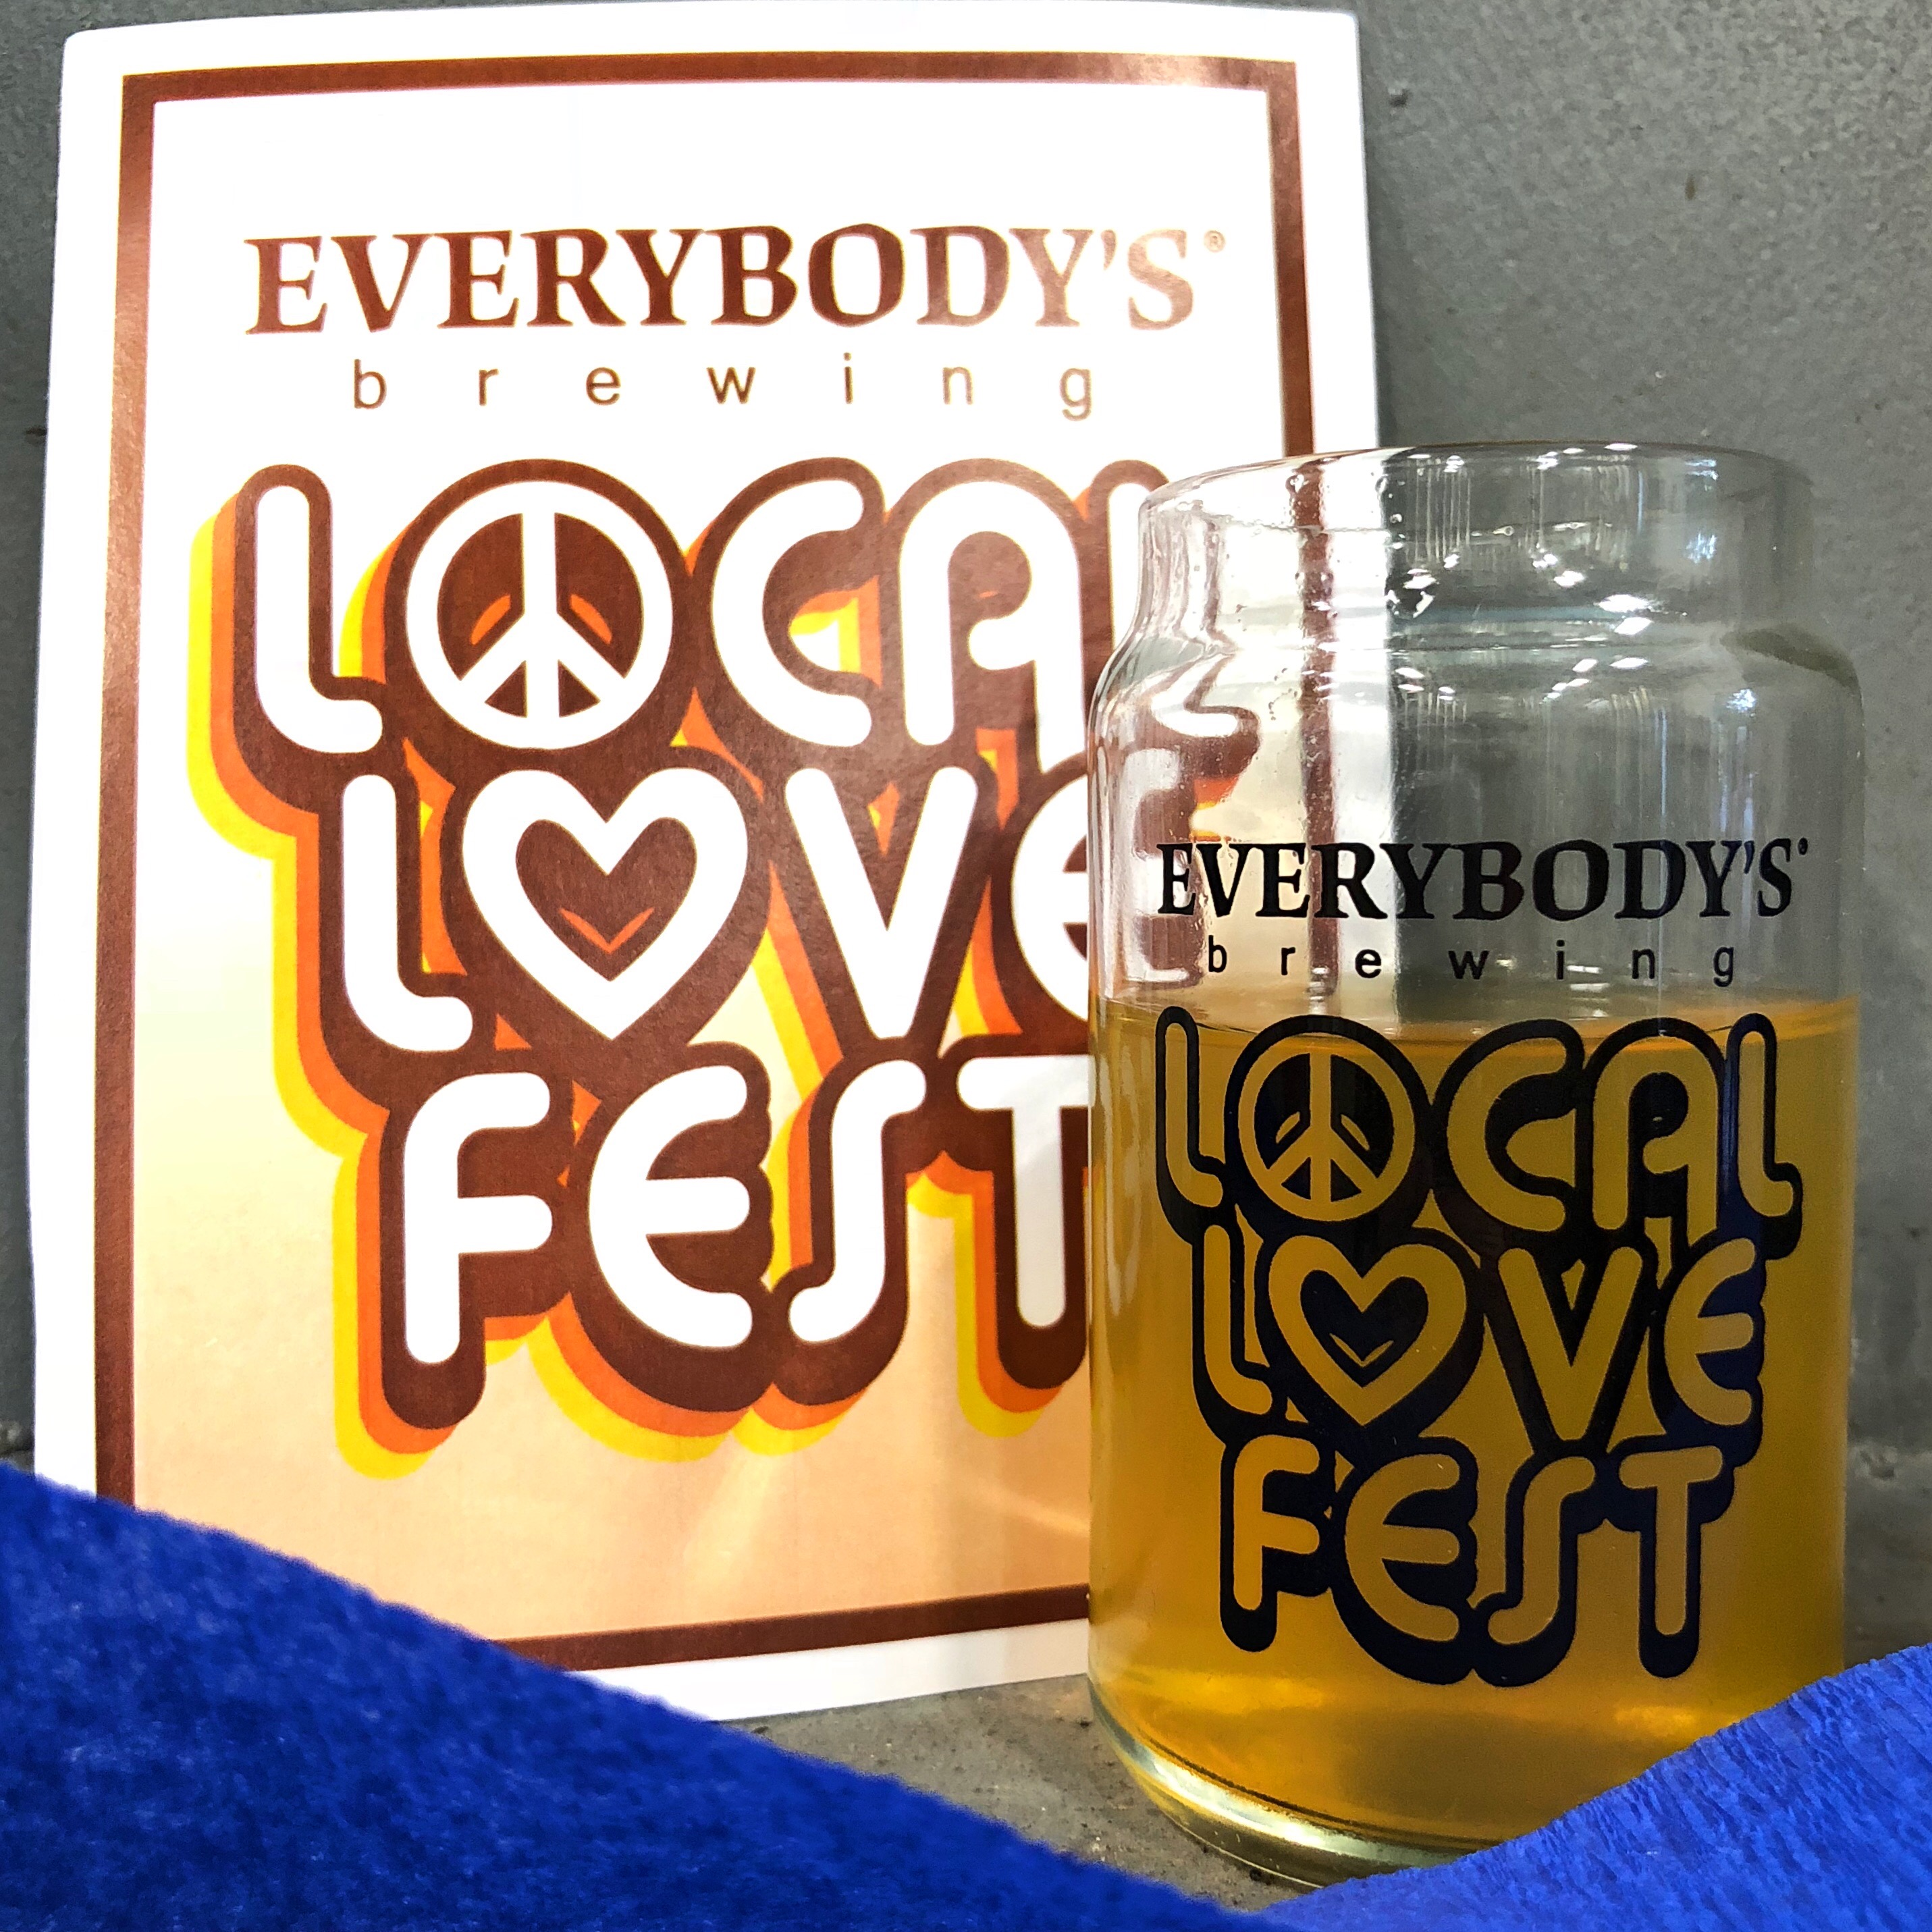 Everybody's Brewing celebrated its 9th Anniversary in October with its Local Love Fest that featured many collaborations with fellow Gorge businesses.